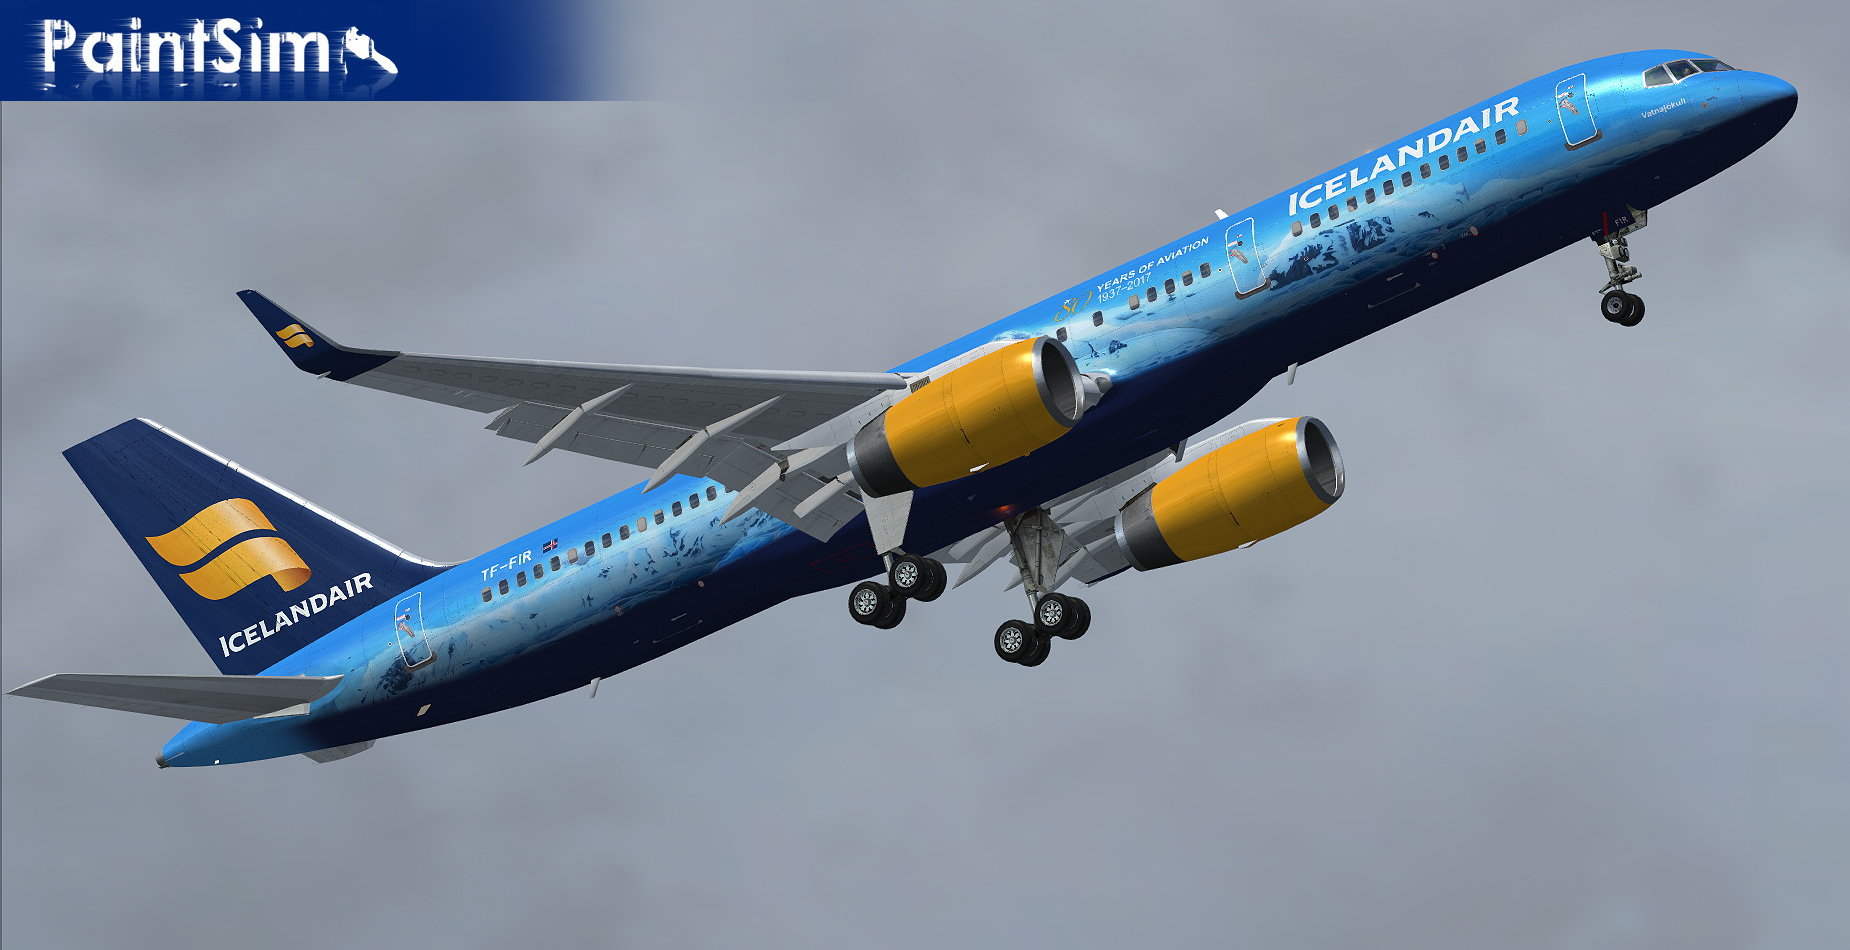 PAINTSIM - UHD TEXTURE PACK 4 FOR CAPTAIN SIM BOEING 757-200 FSX